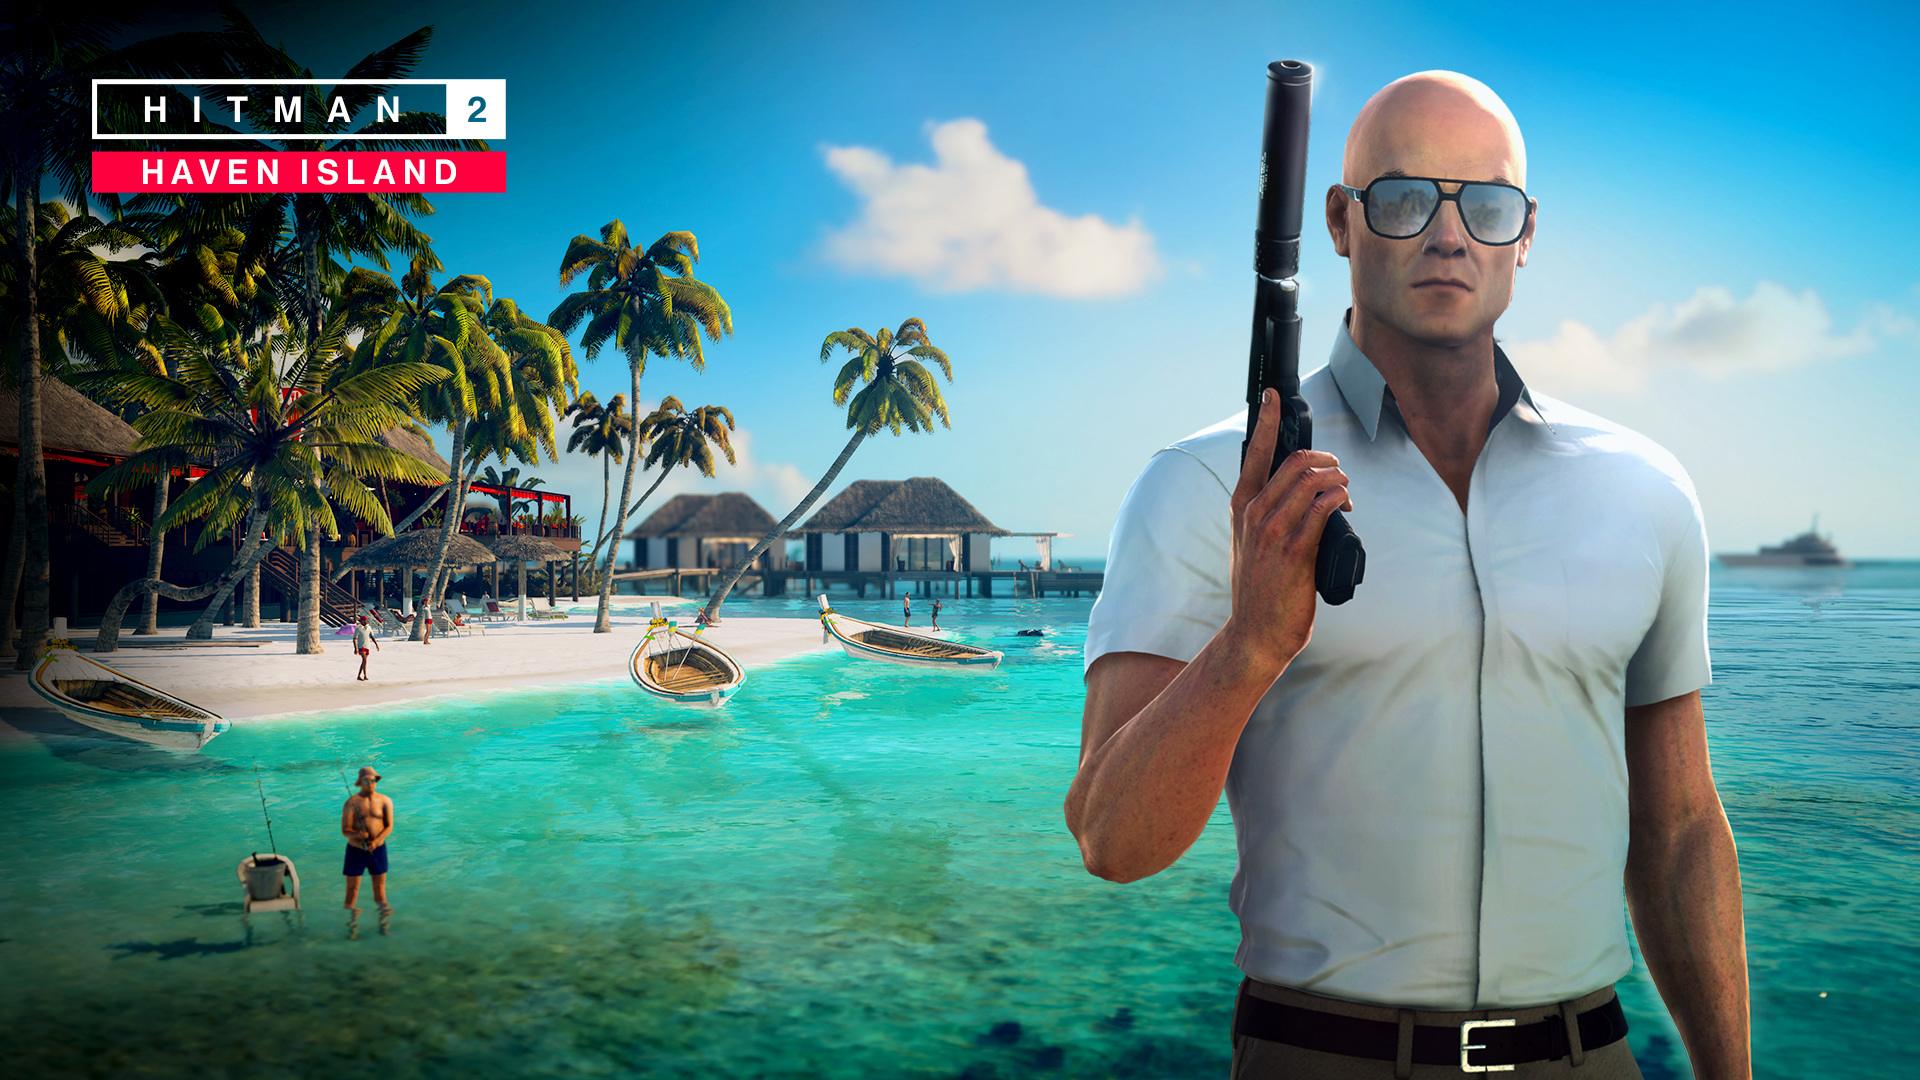 Hitman 2 Haven Island Wallpaper Hd Games 4k Wallpapers Images